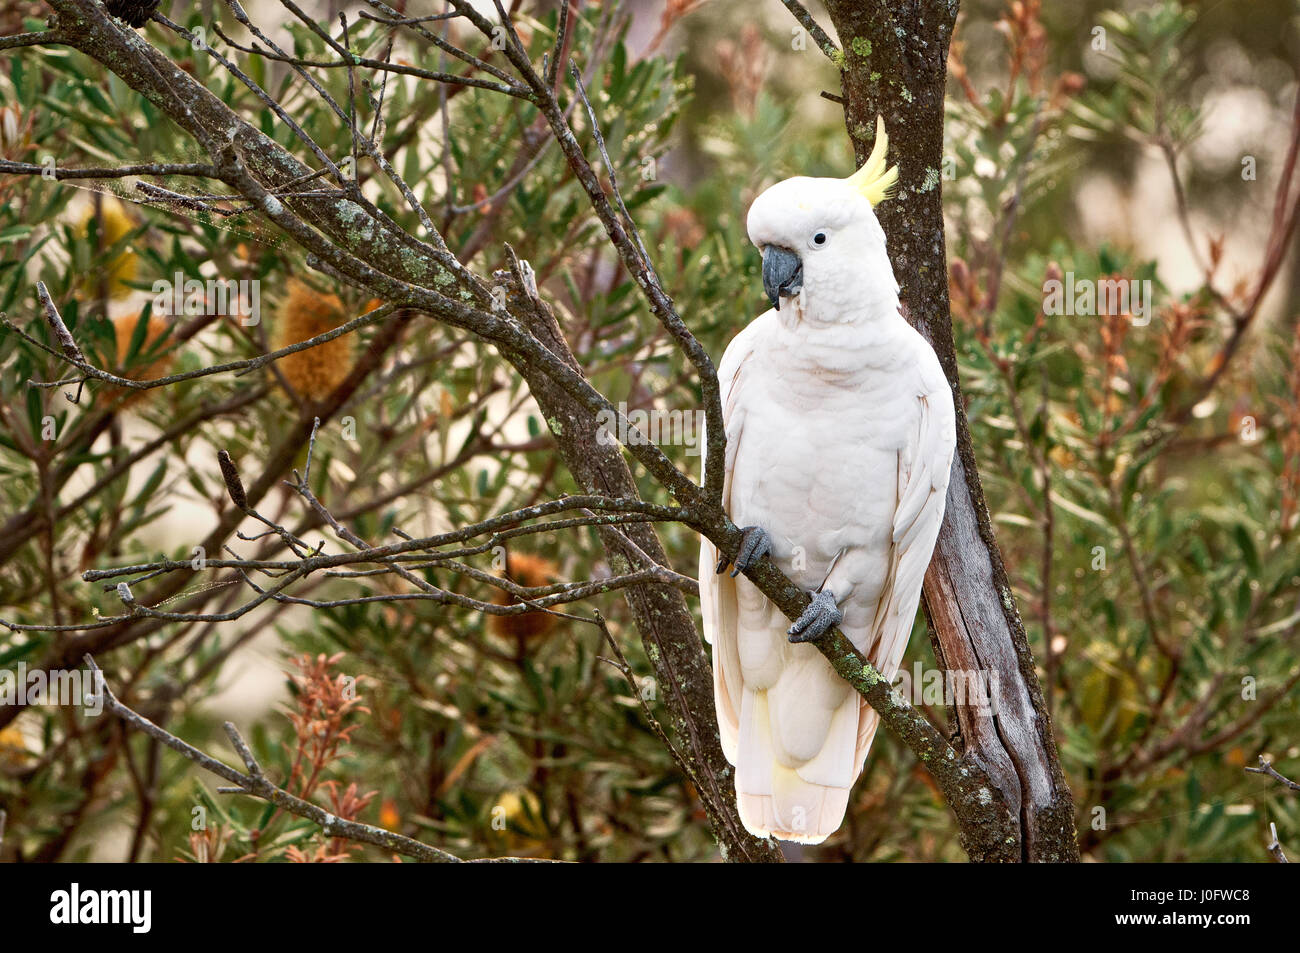 Sulphur-crested Cockatoo sitting in a tree. - Stock Image